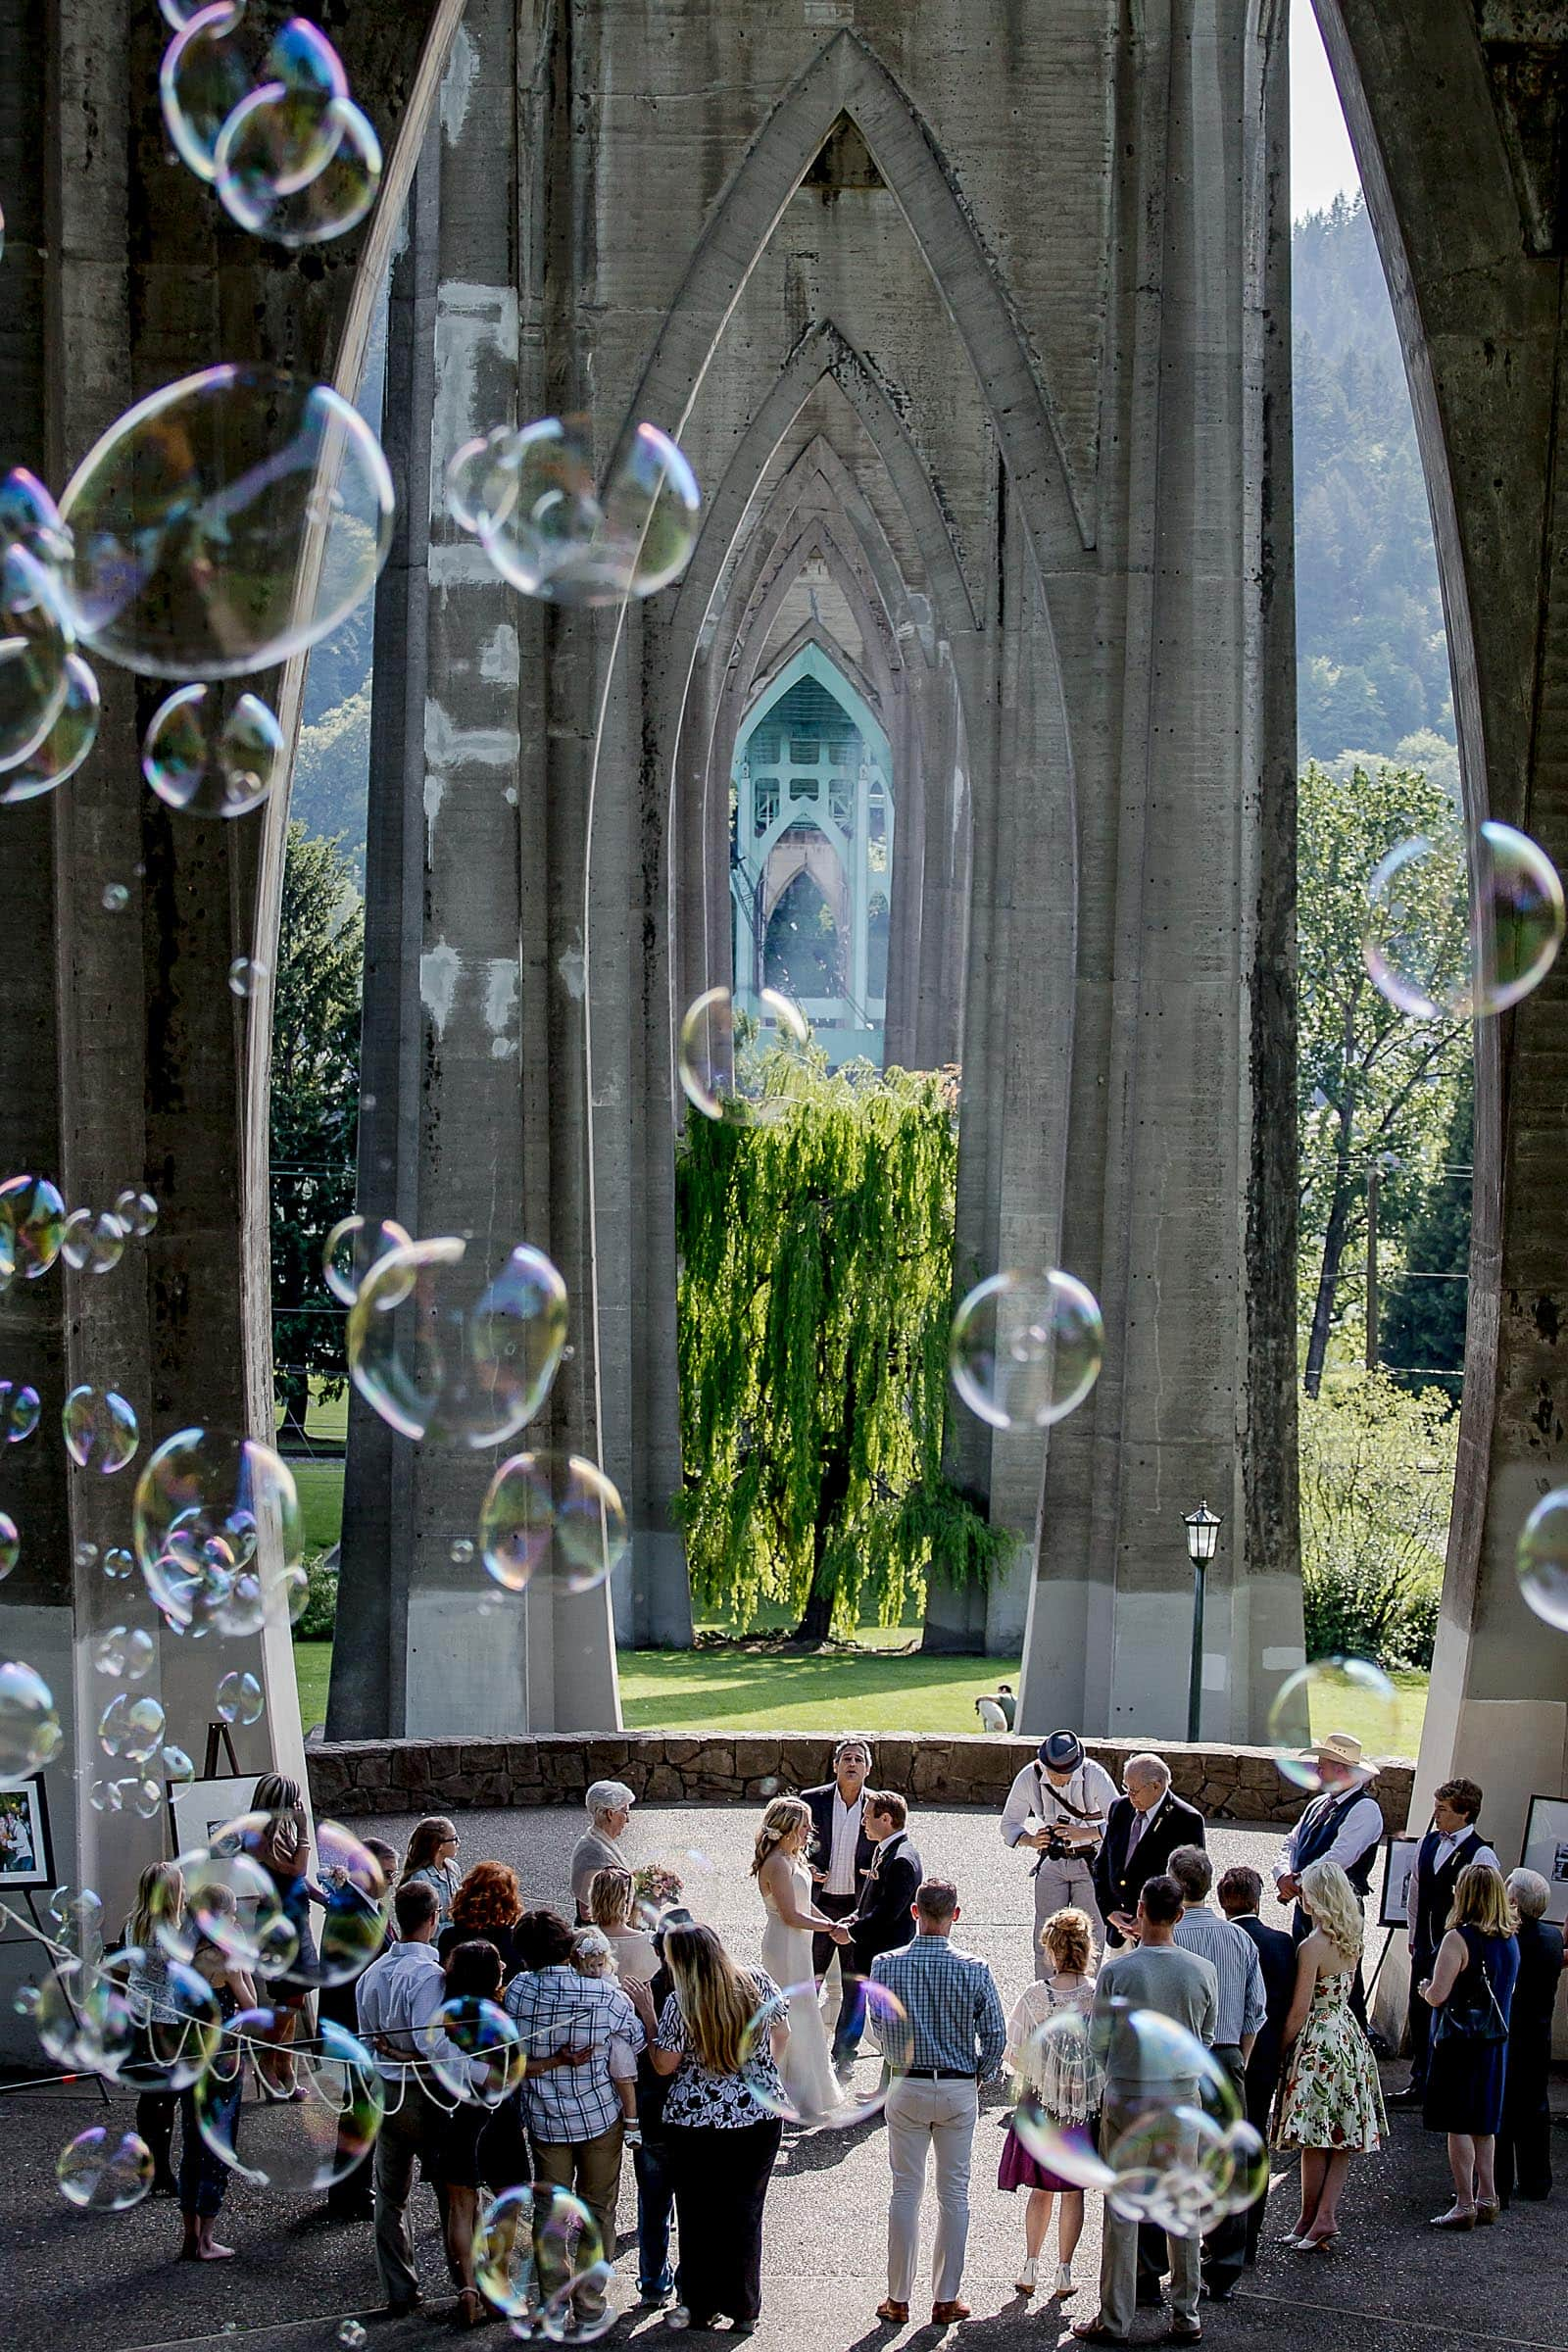 Wide angle perspective of the St Johns bridge during an outdoor small Cathedral Park Wedding ceremony in Portland Oregon